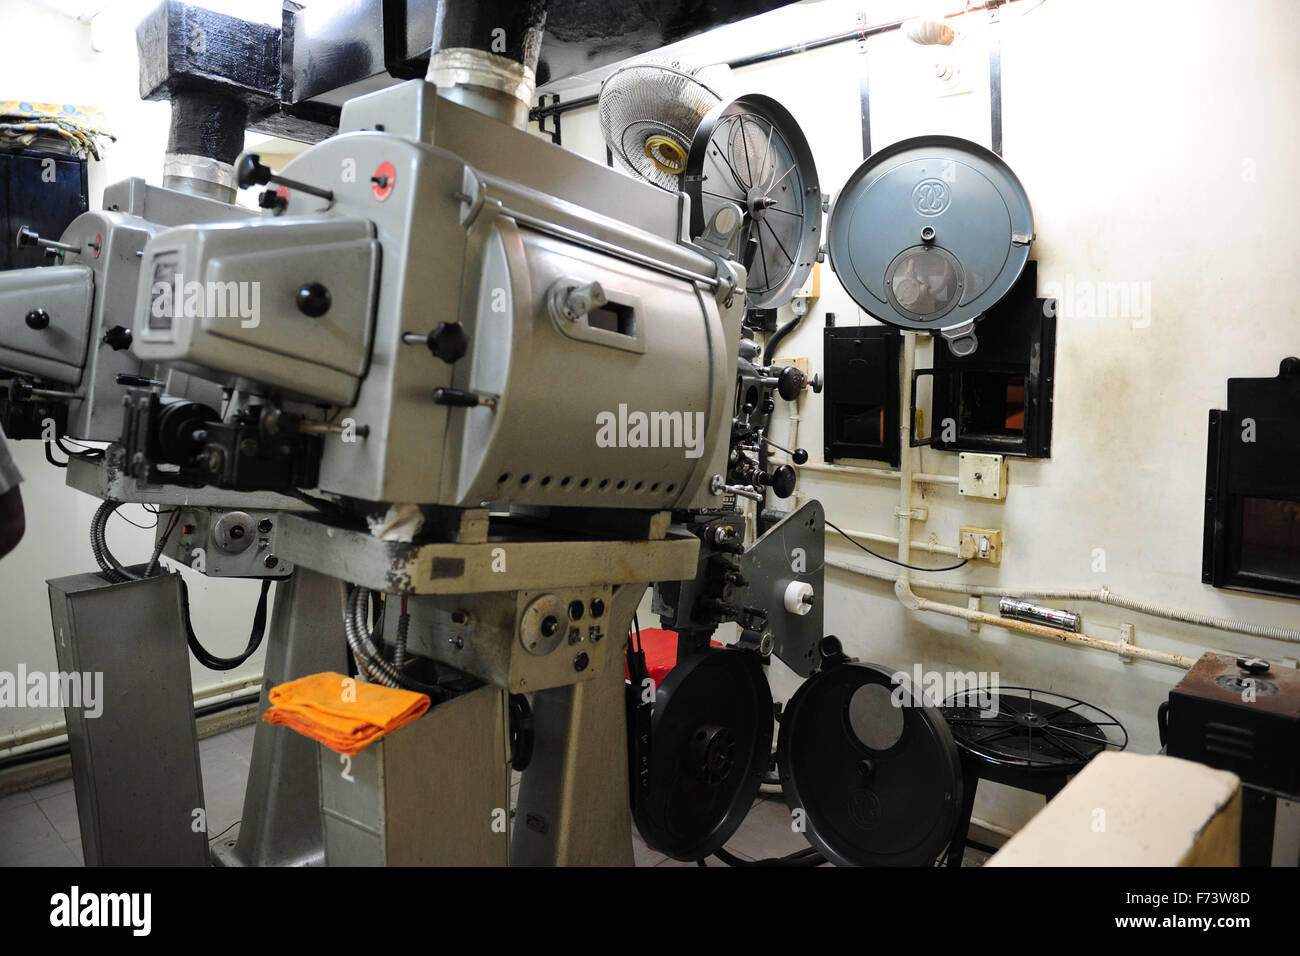 Cinema Theatre Projector High Resolution Stock Photography And Images Alamy